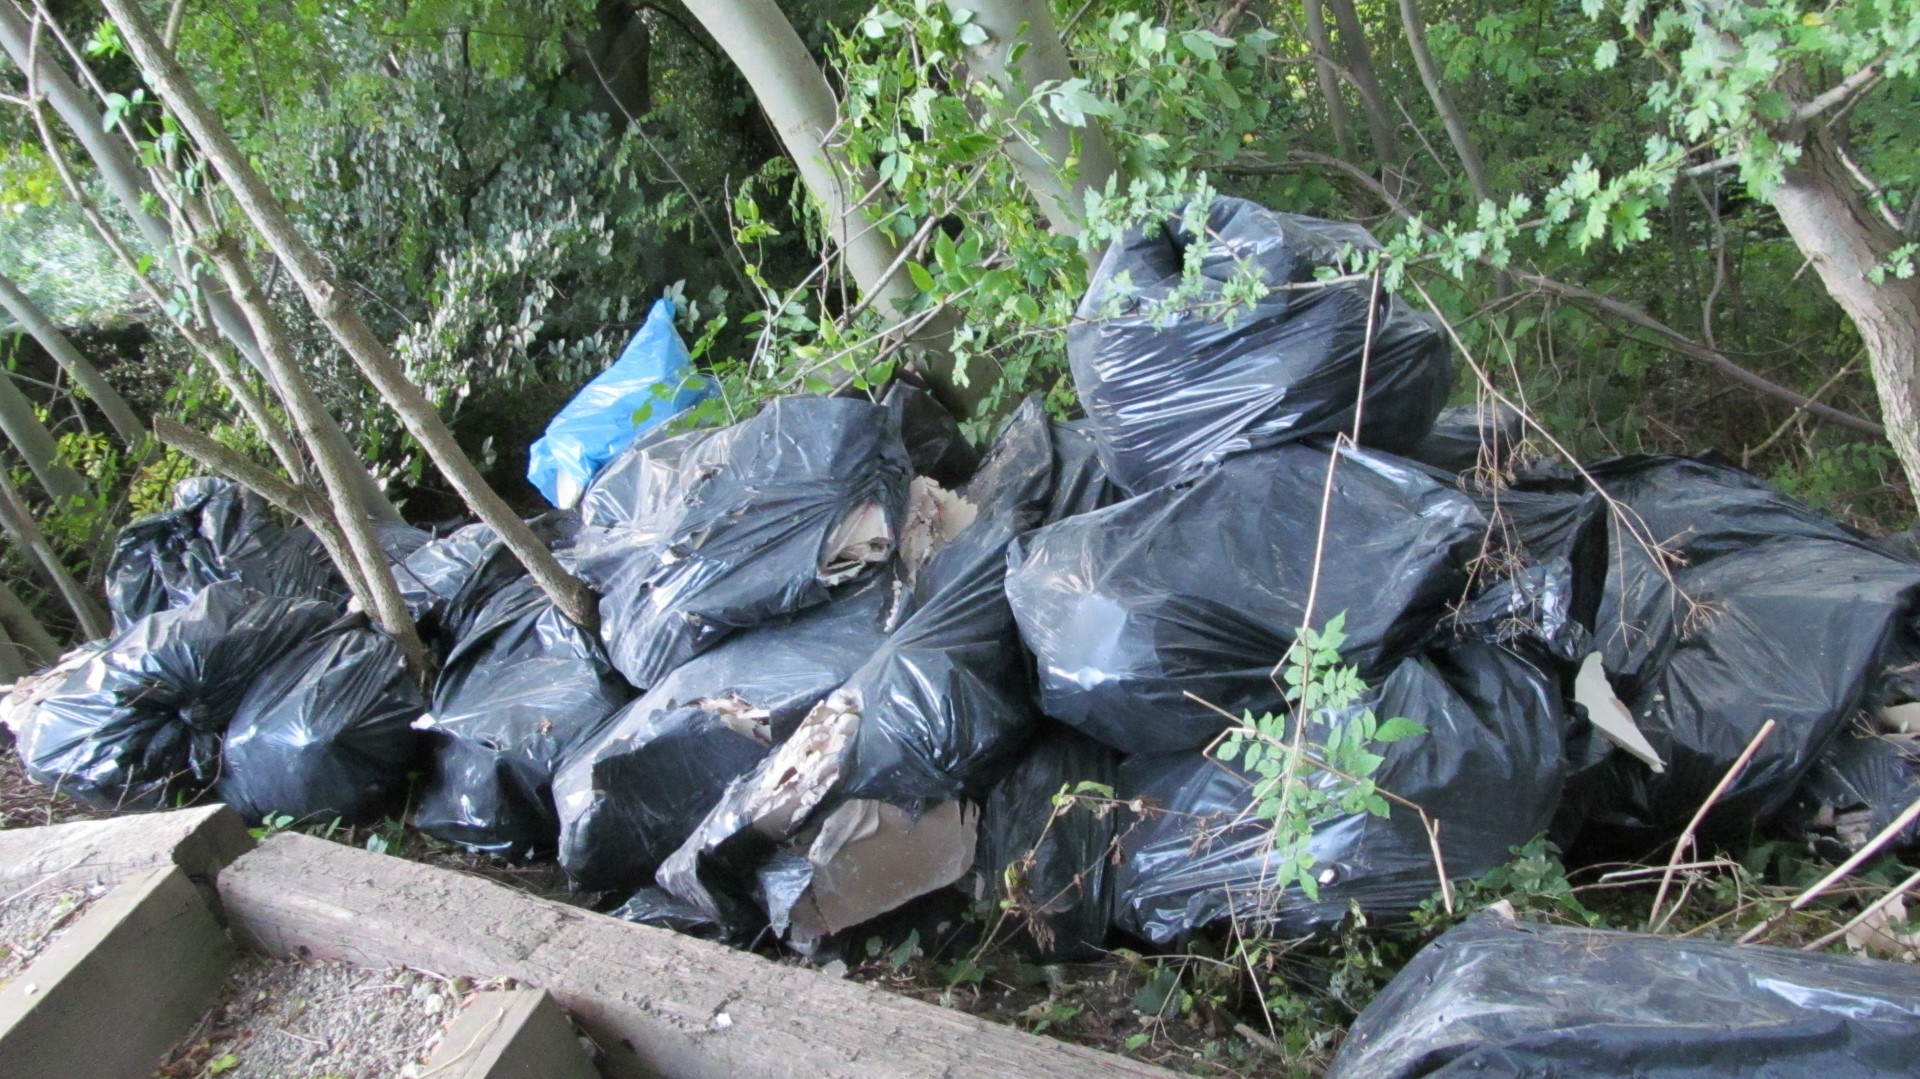 A pile of bin bags amidst the trees in the nature reserve